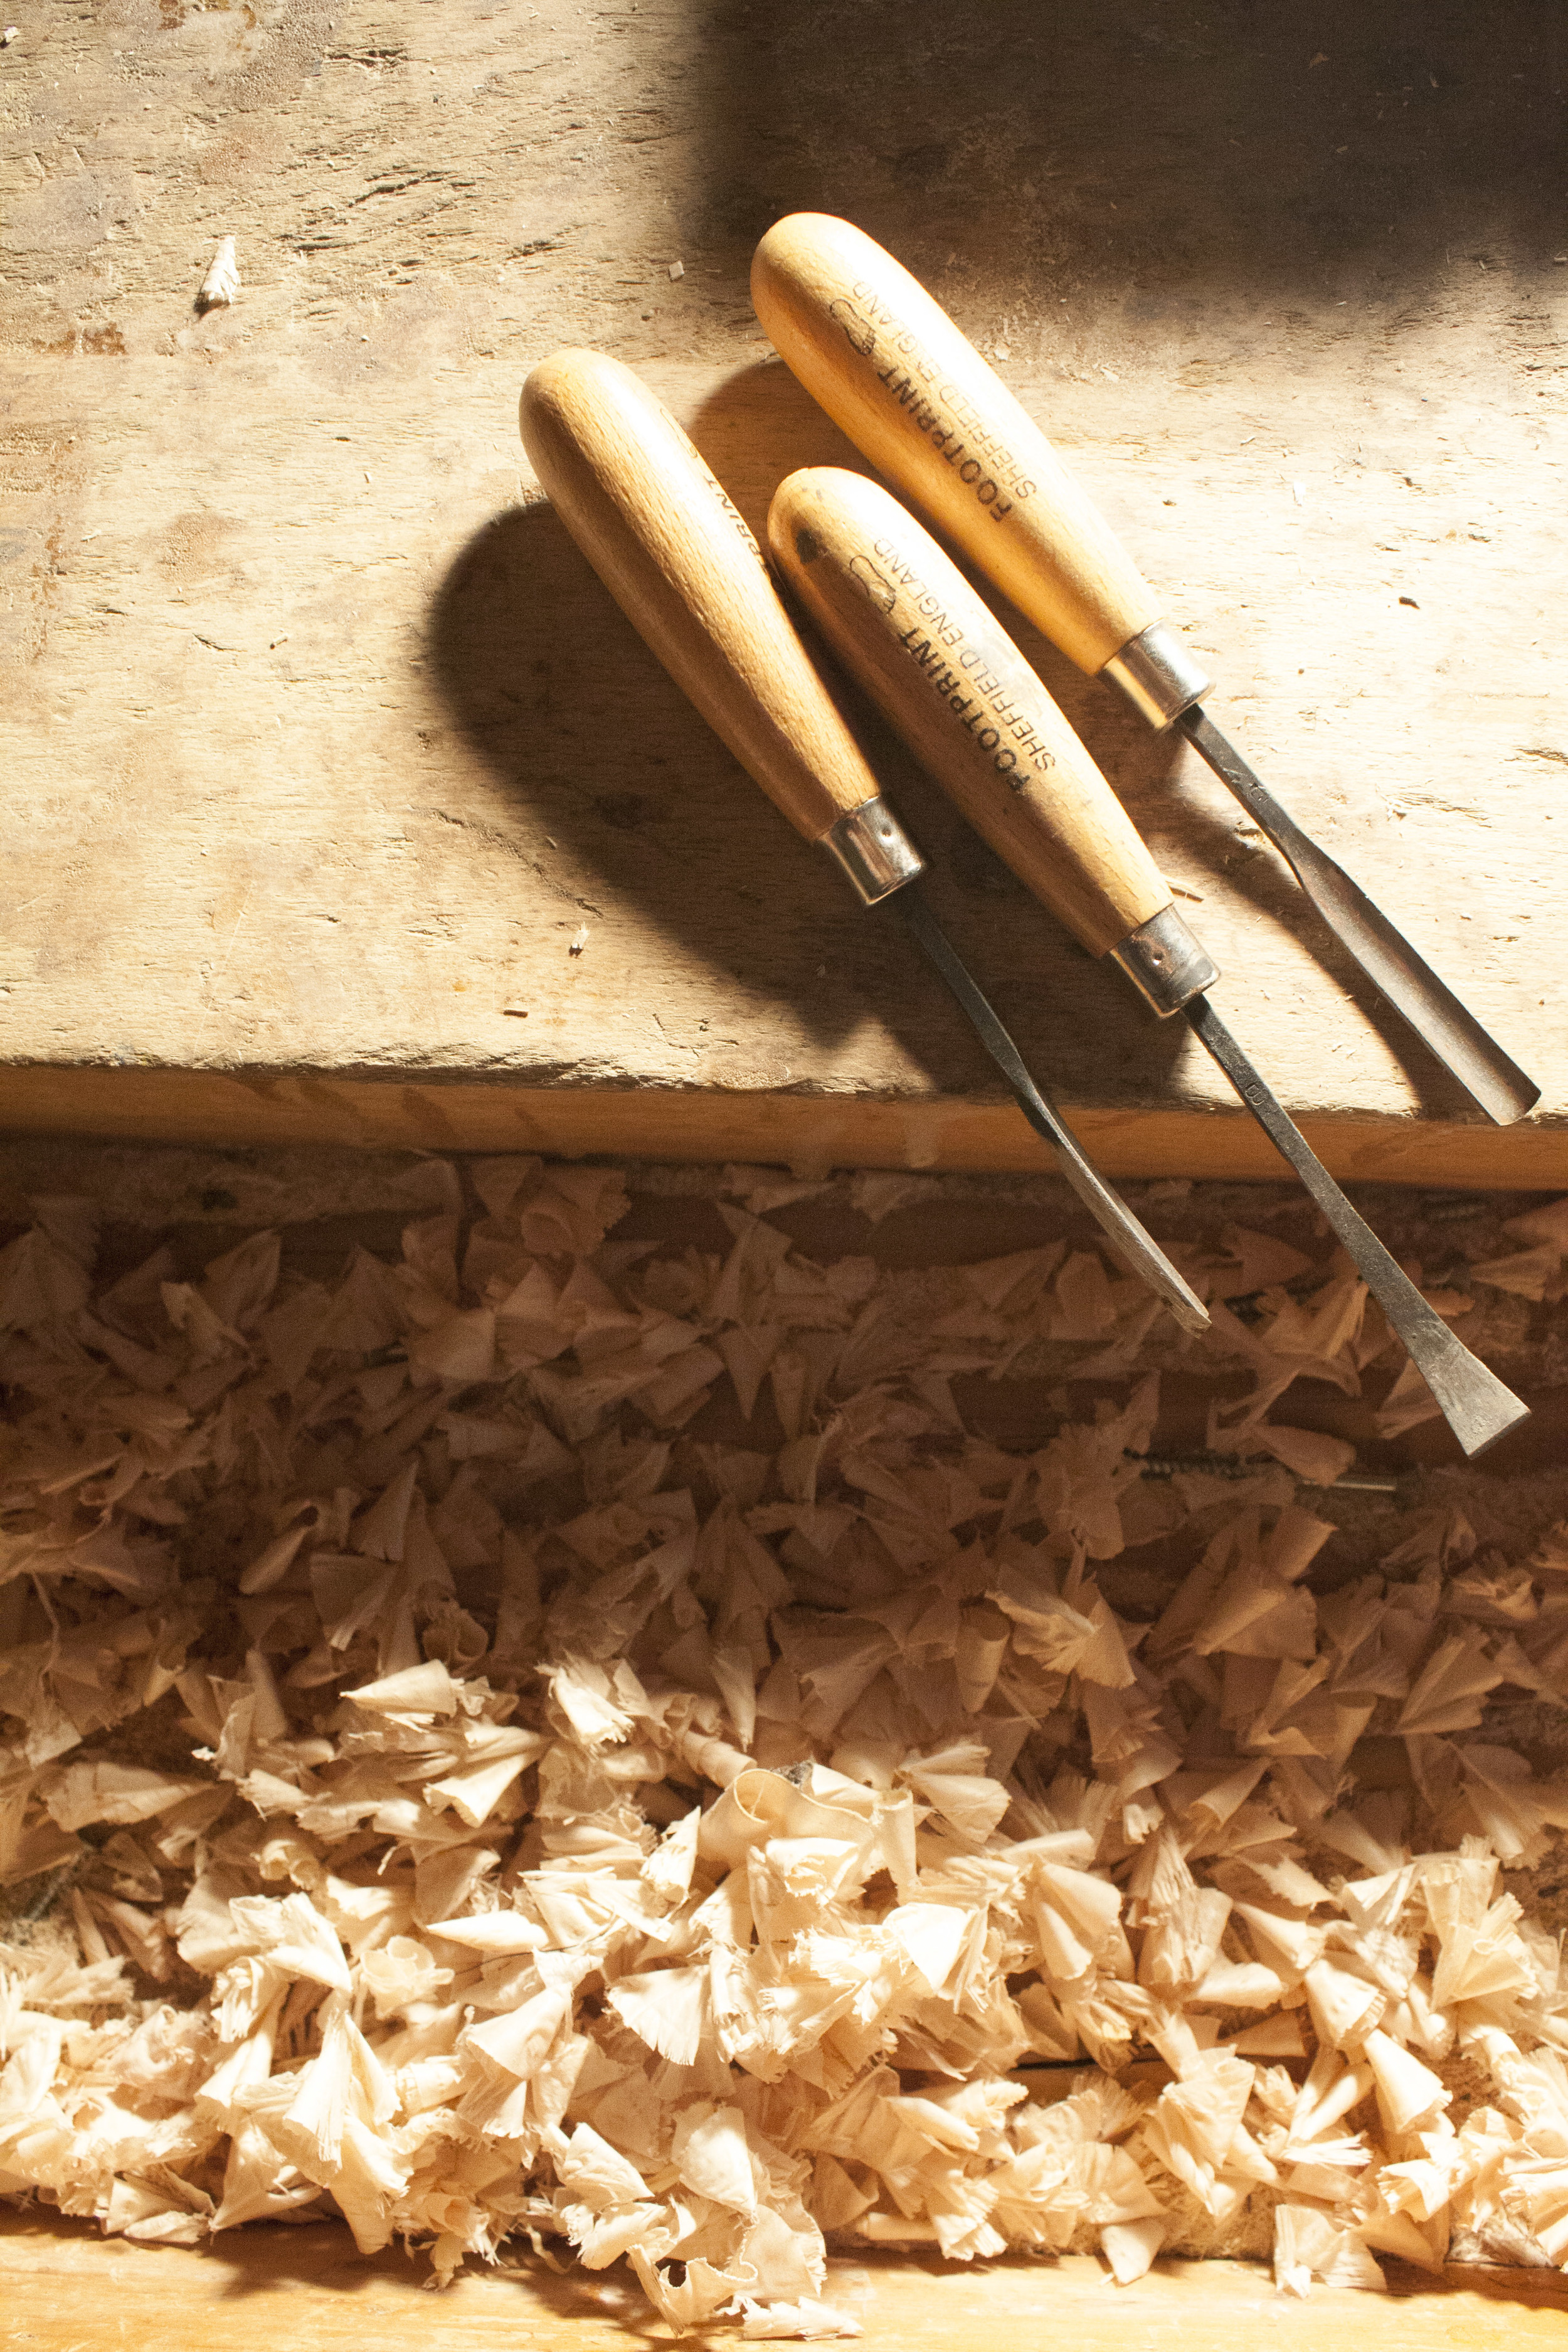 Chisels and shavings.